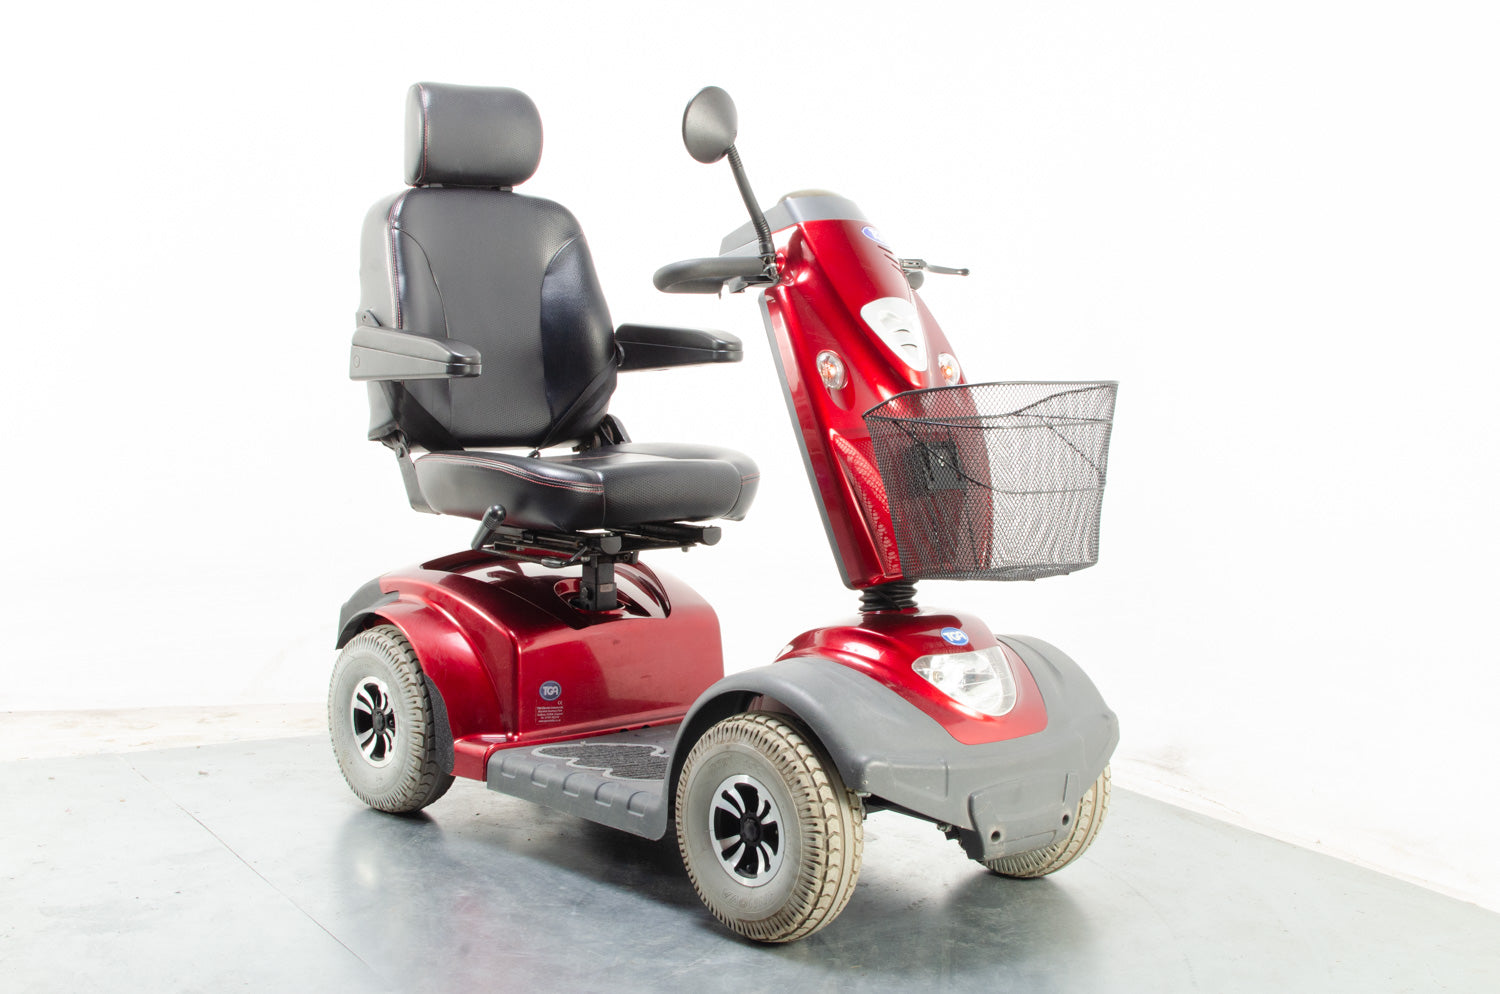 2014 TGA Mystere 8mph Mid Size Mobility Scooter in Red